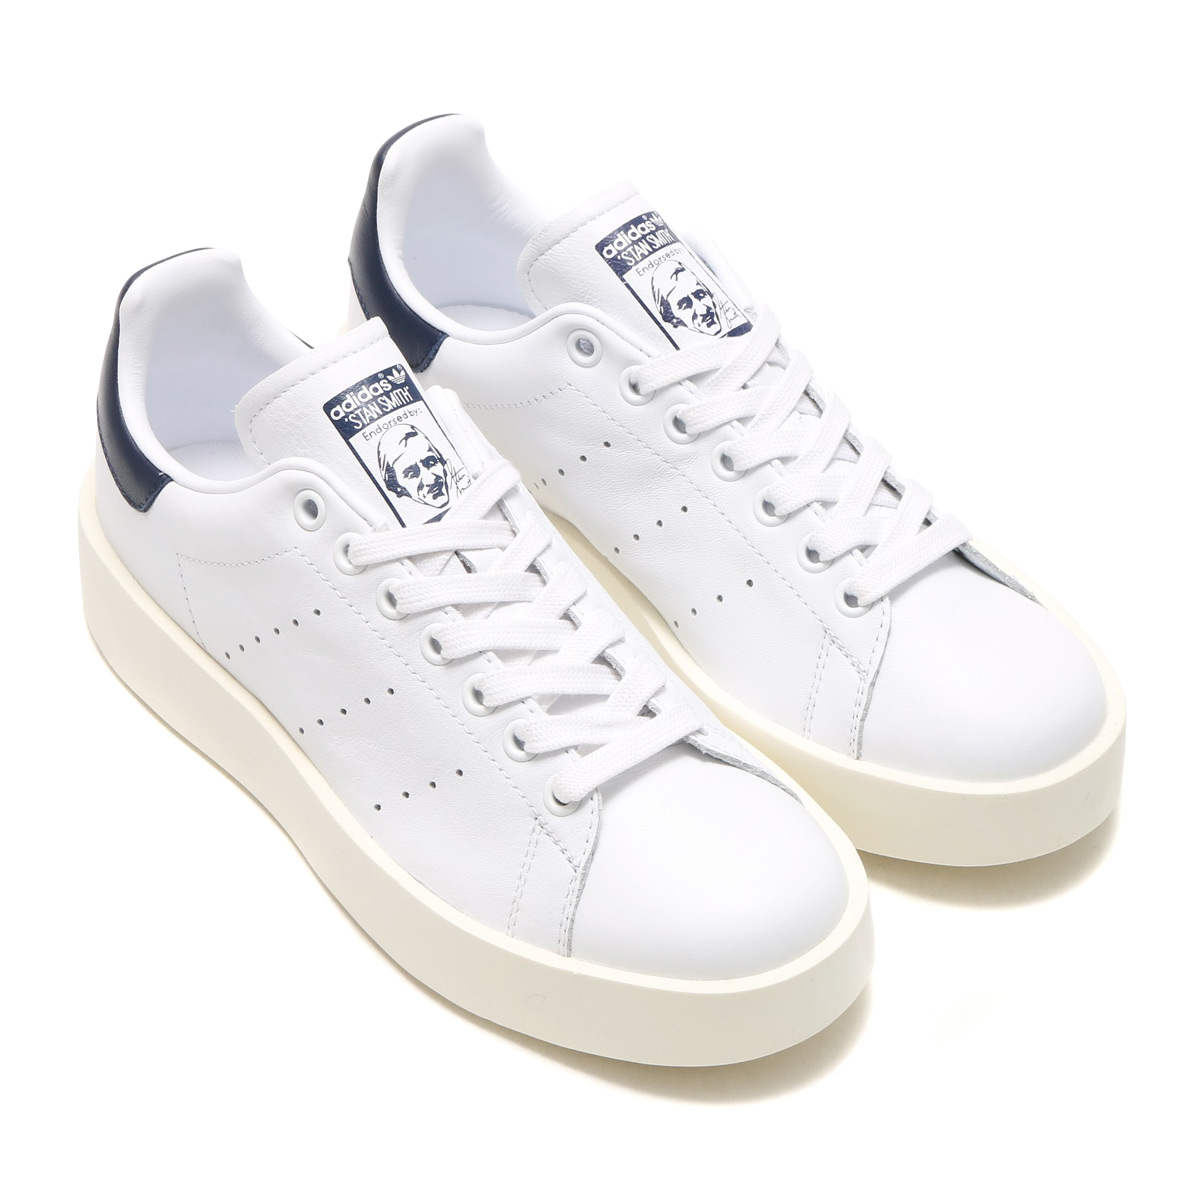 the latest 9f88d 3be62 adidas Originals STANSMITH BD W (Adidas originals Stan Smith boldface)  (Core Black/Core Black/College Navy) 17SS-I